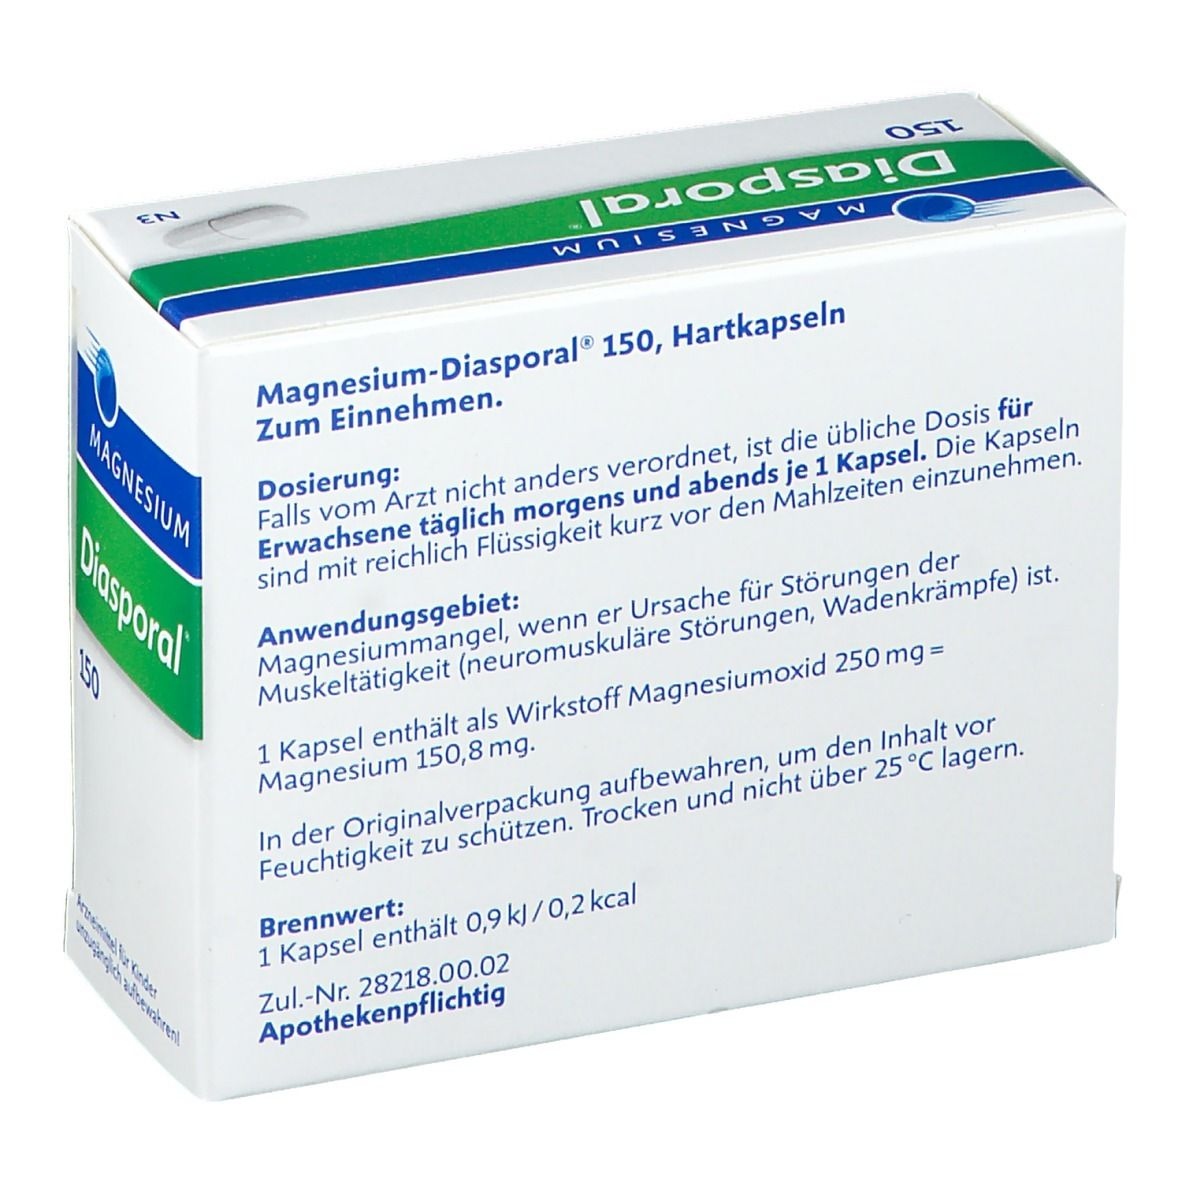 Magnesium Einnahme Morgens Oder Abends - Quotes Update Here